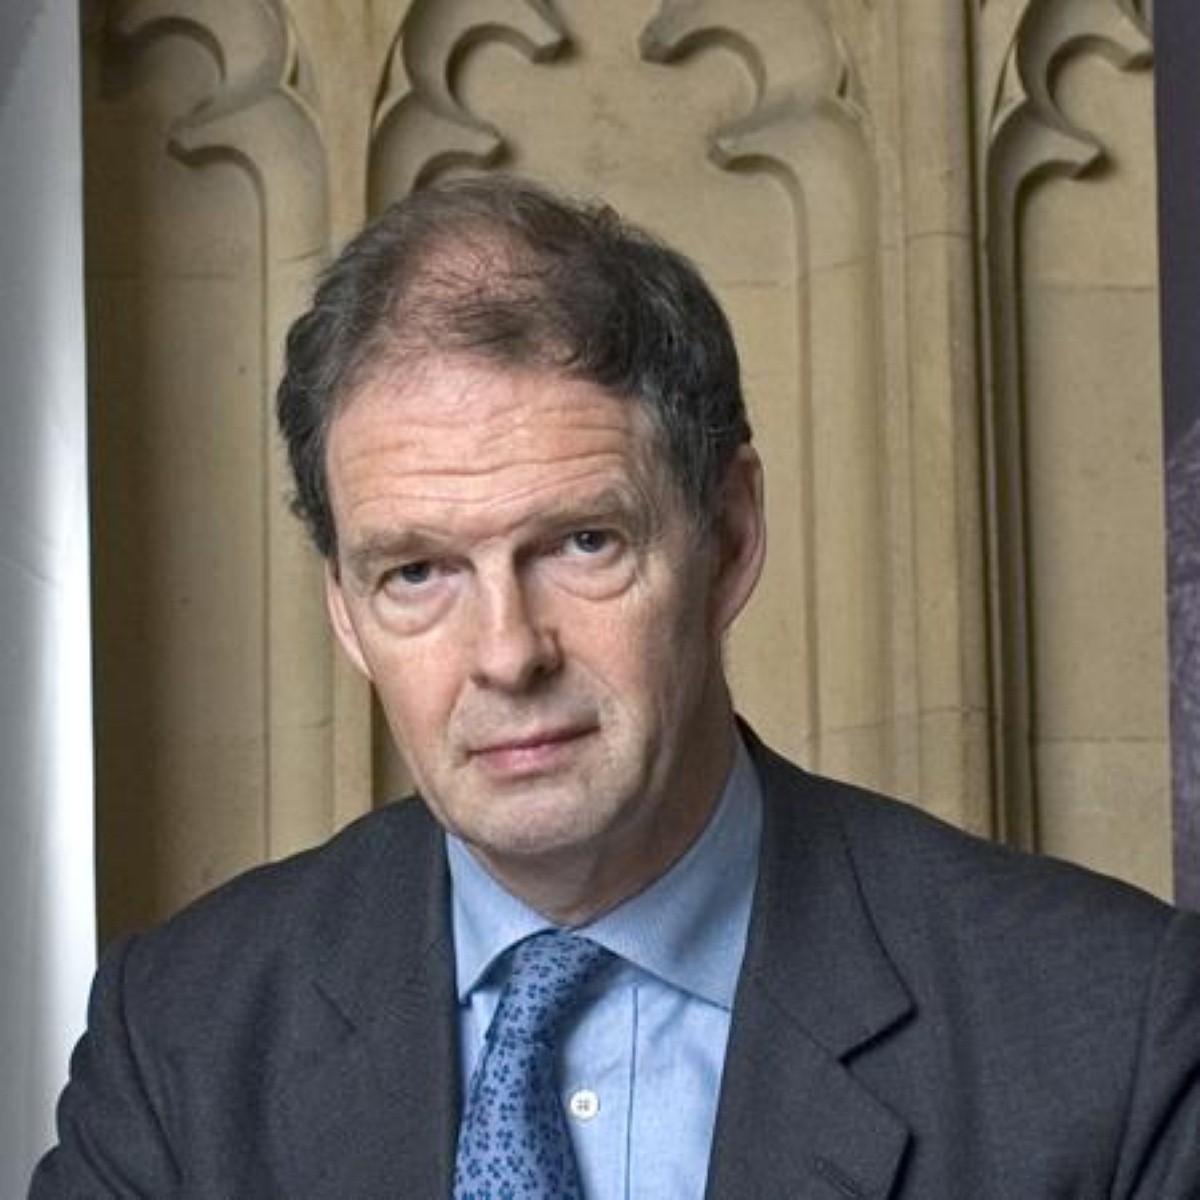 James Arbuthnot will stand down at the next general election